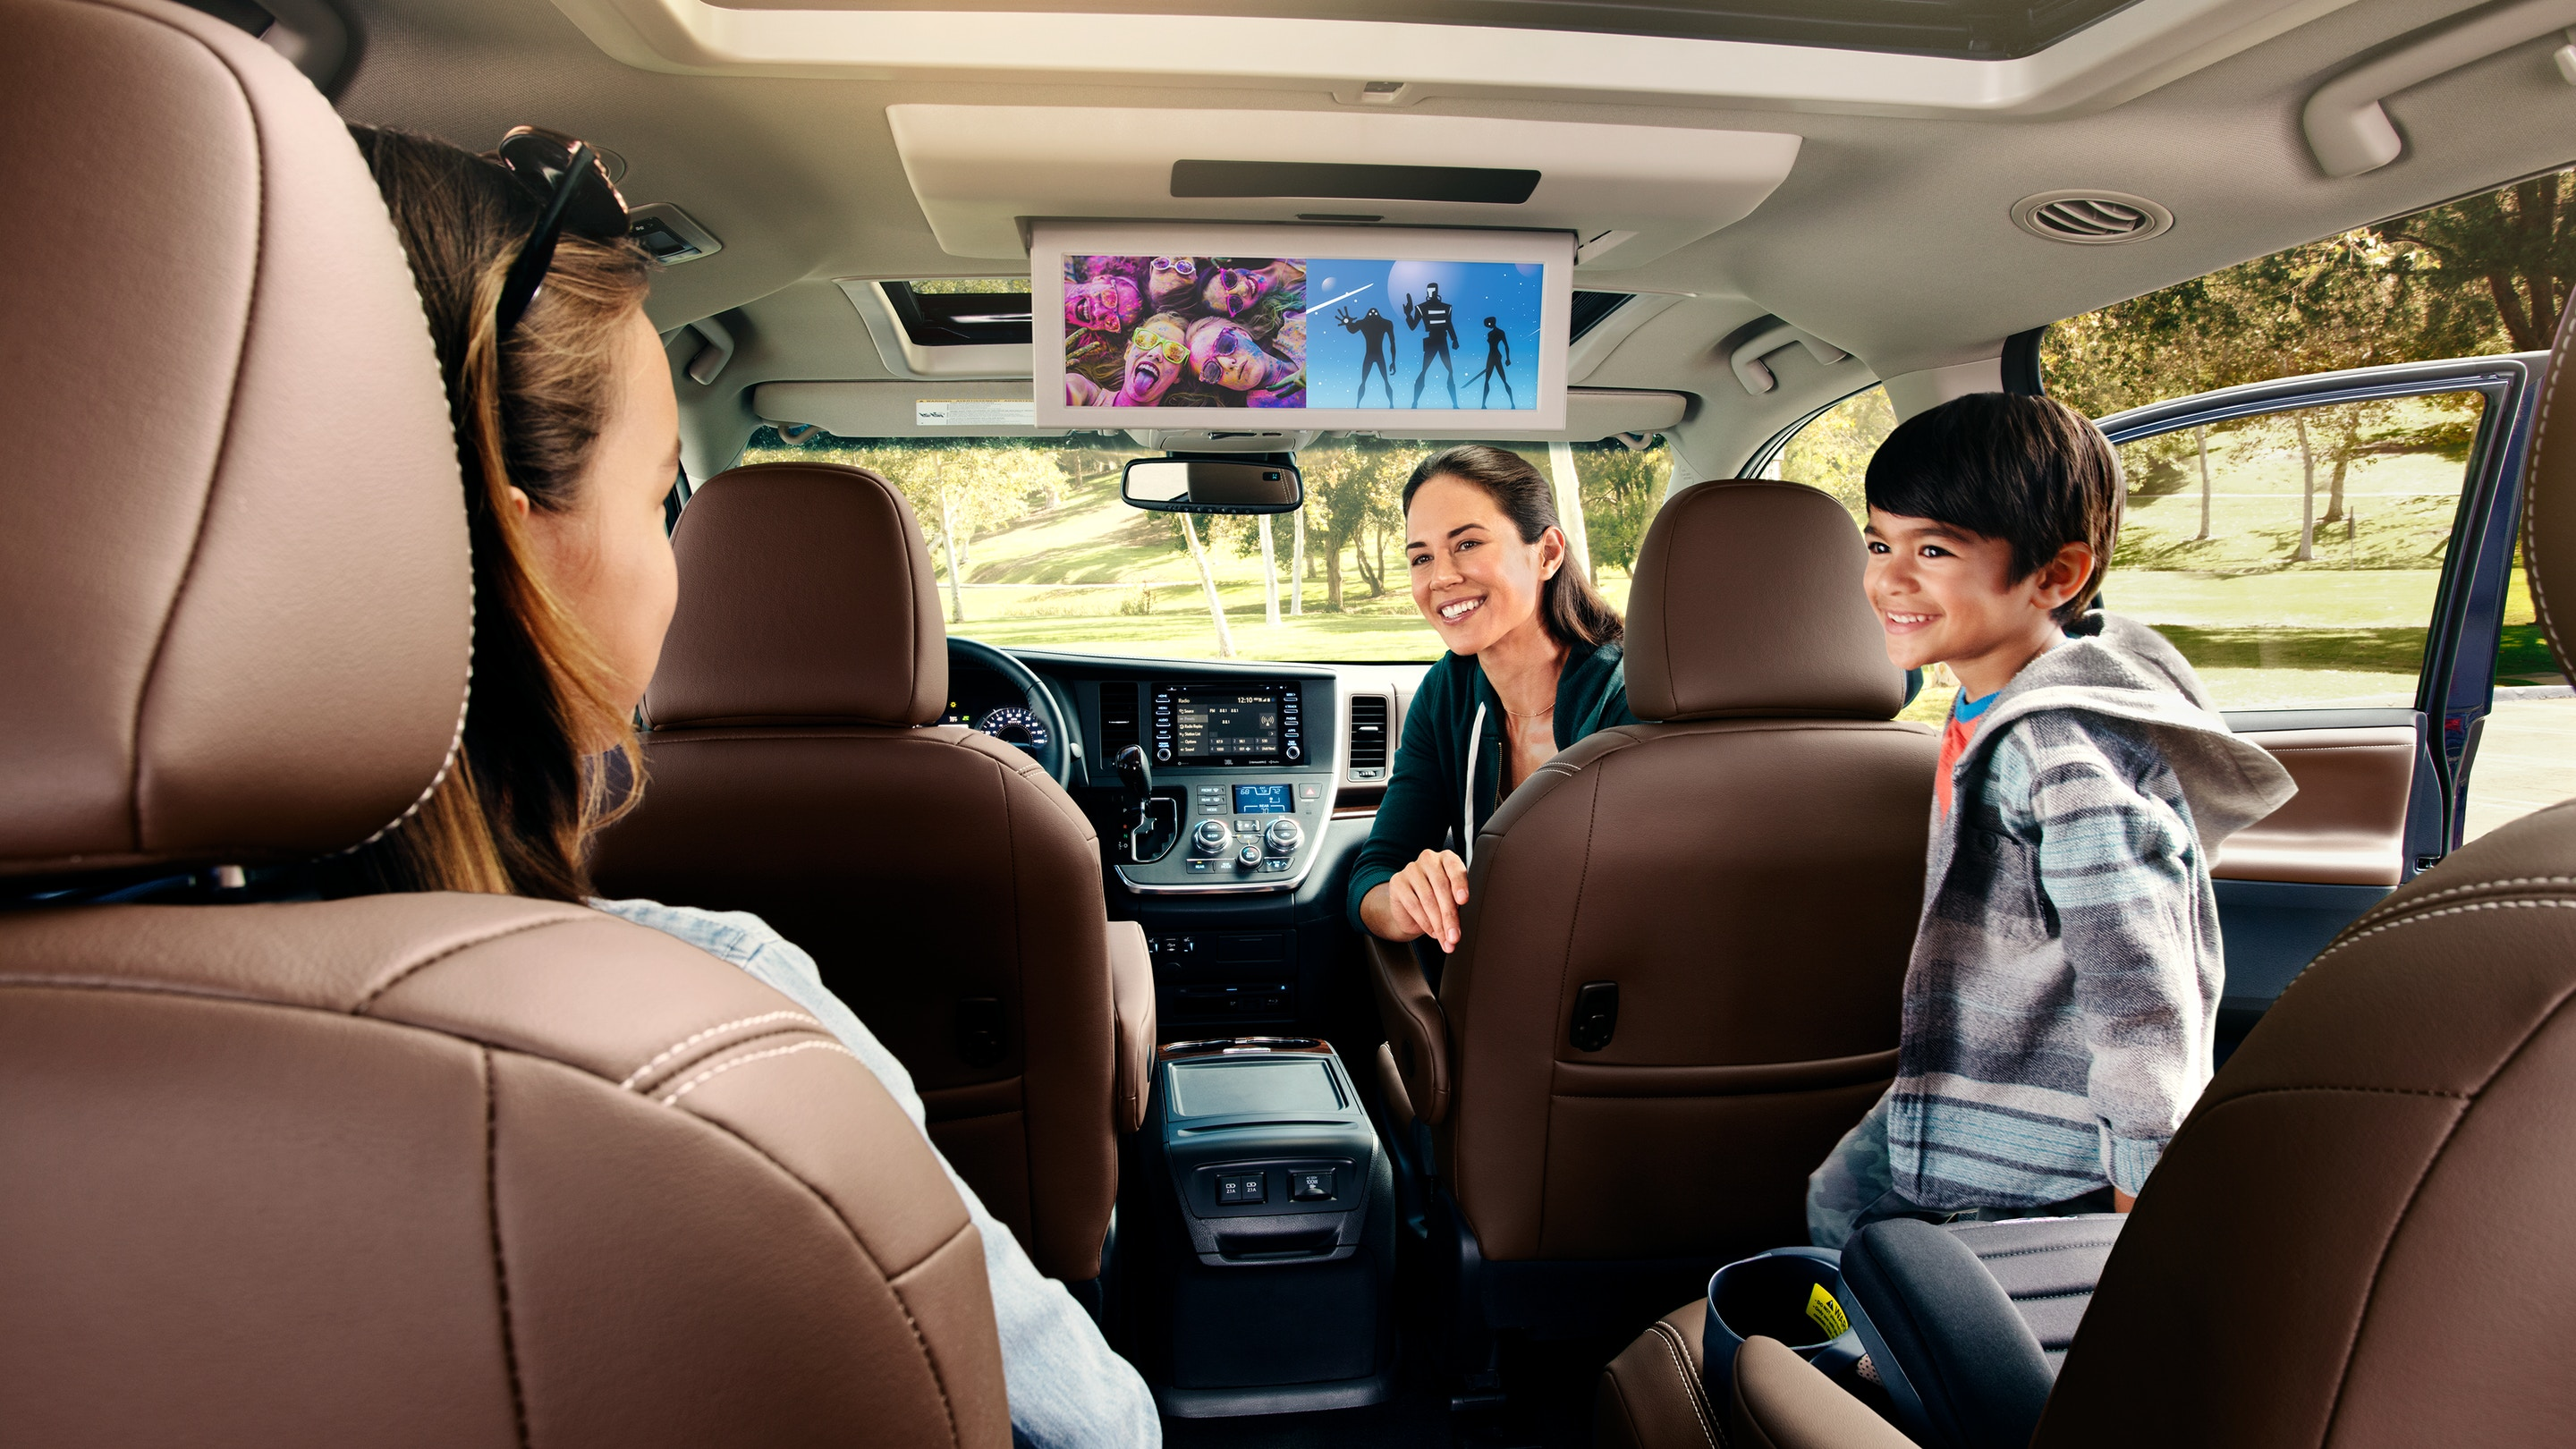 You'll Love the Rear Entertainment System!